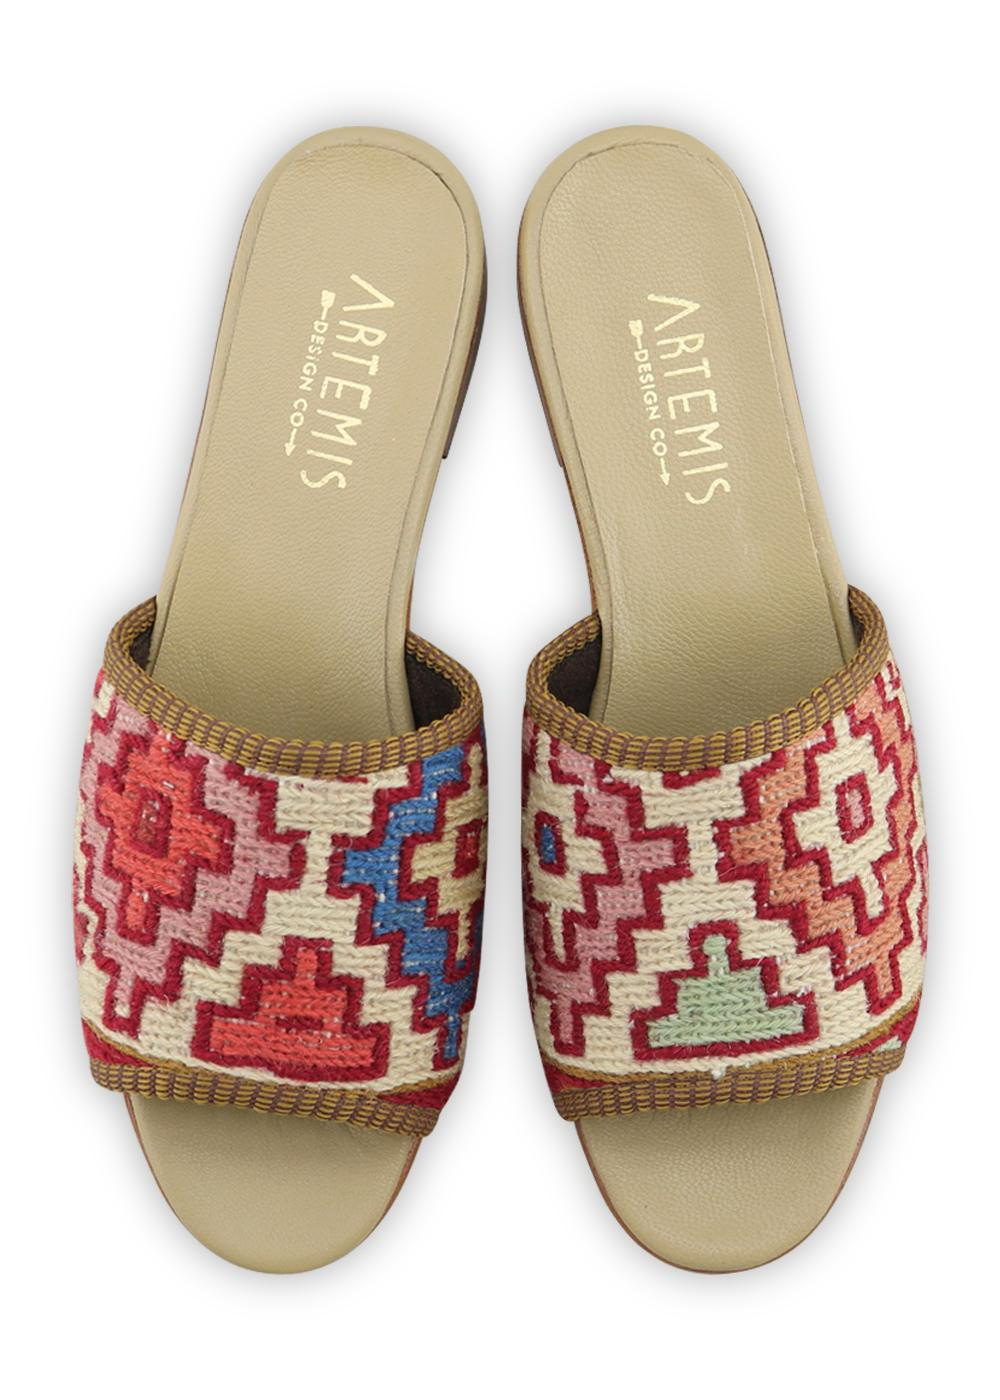 Archived Women's - Women's Sumak Kilim Sandals - Size 40